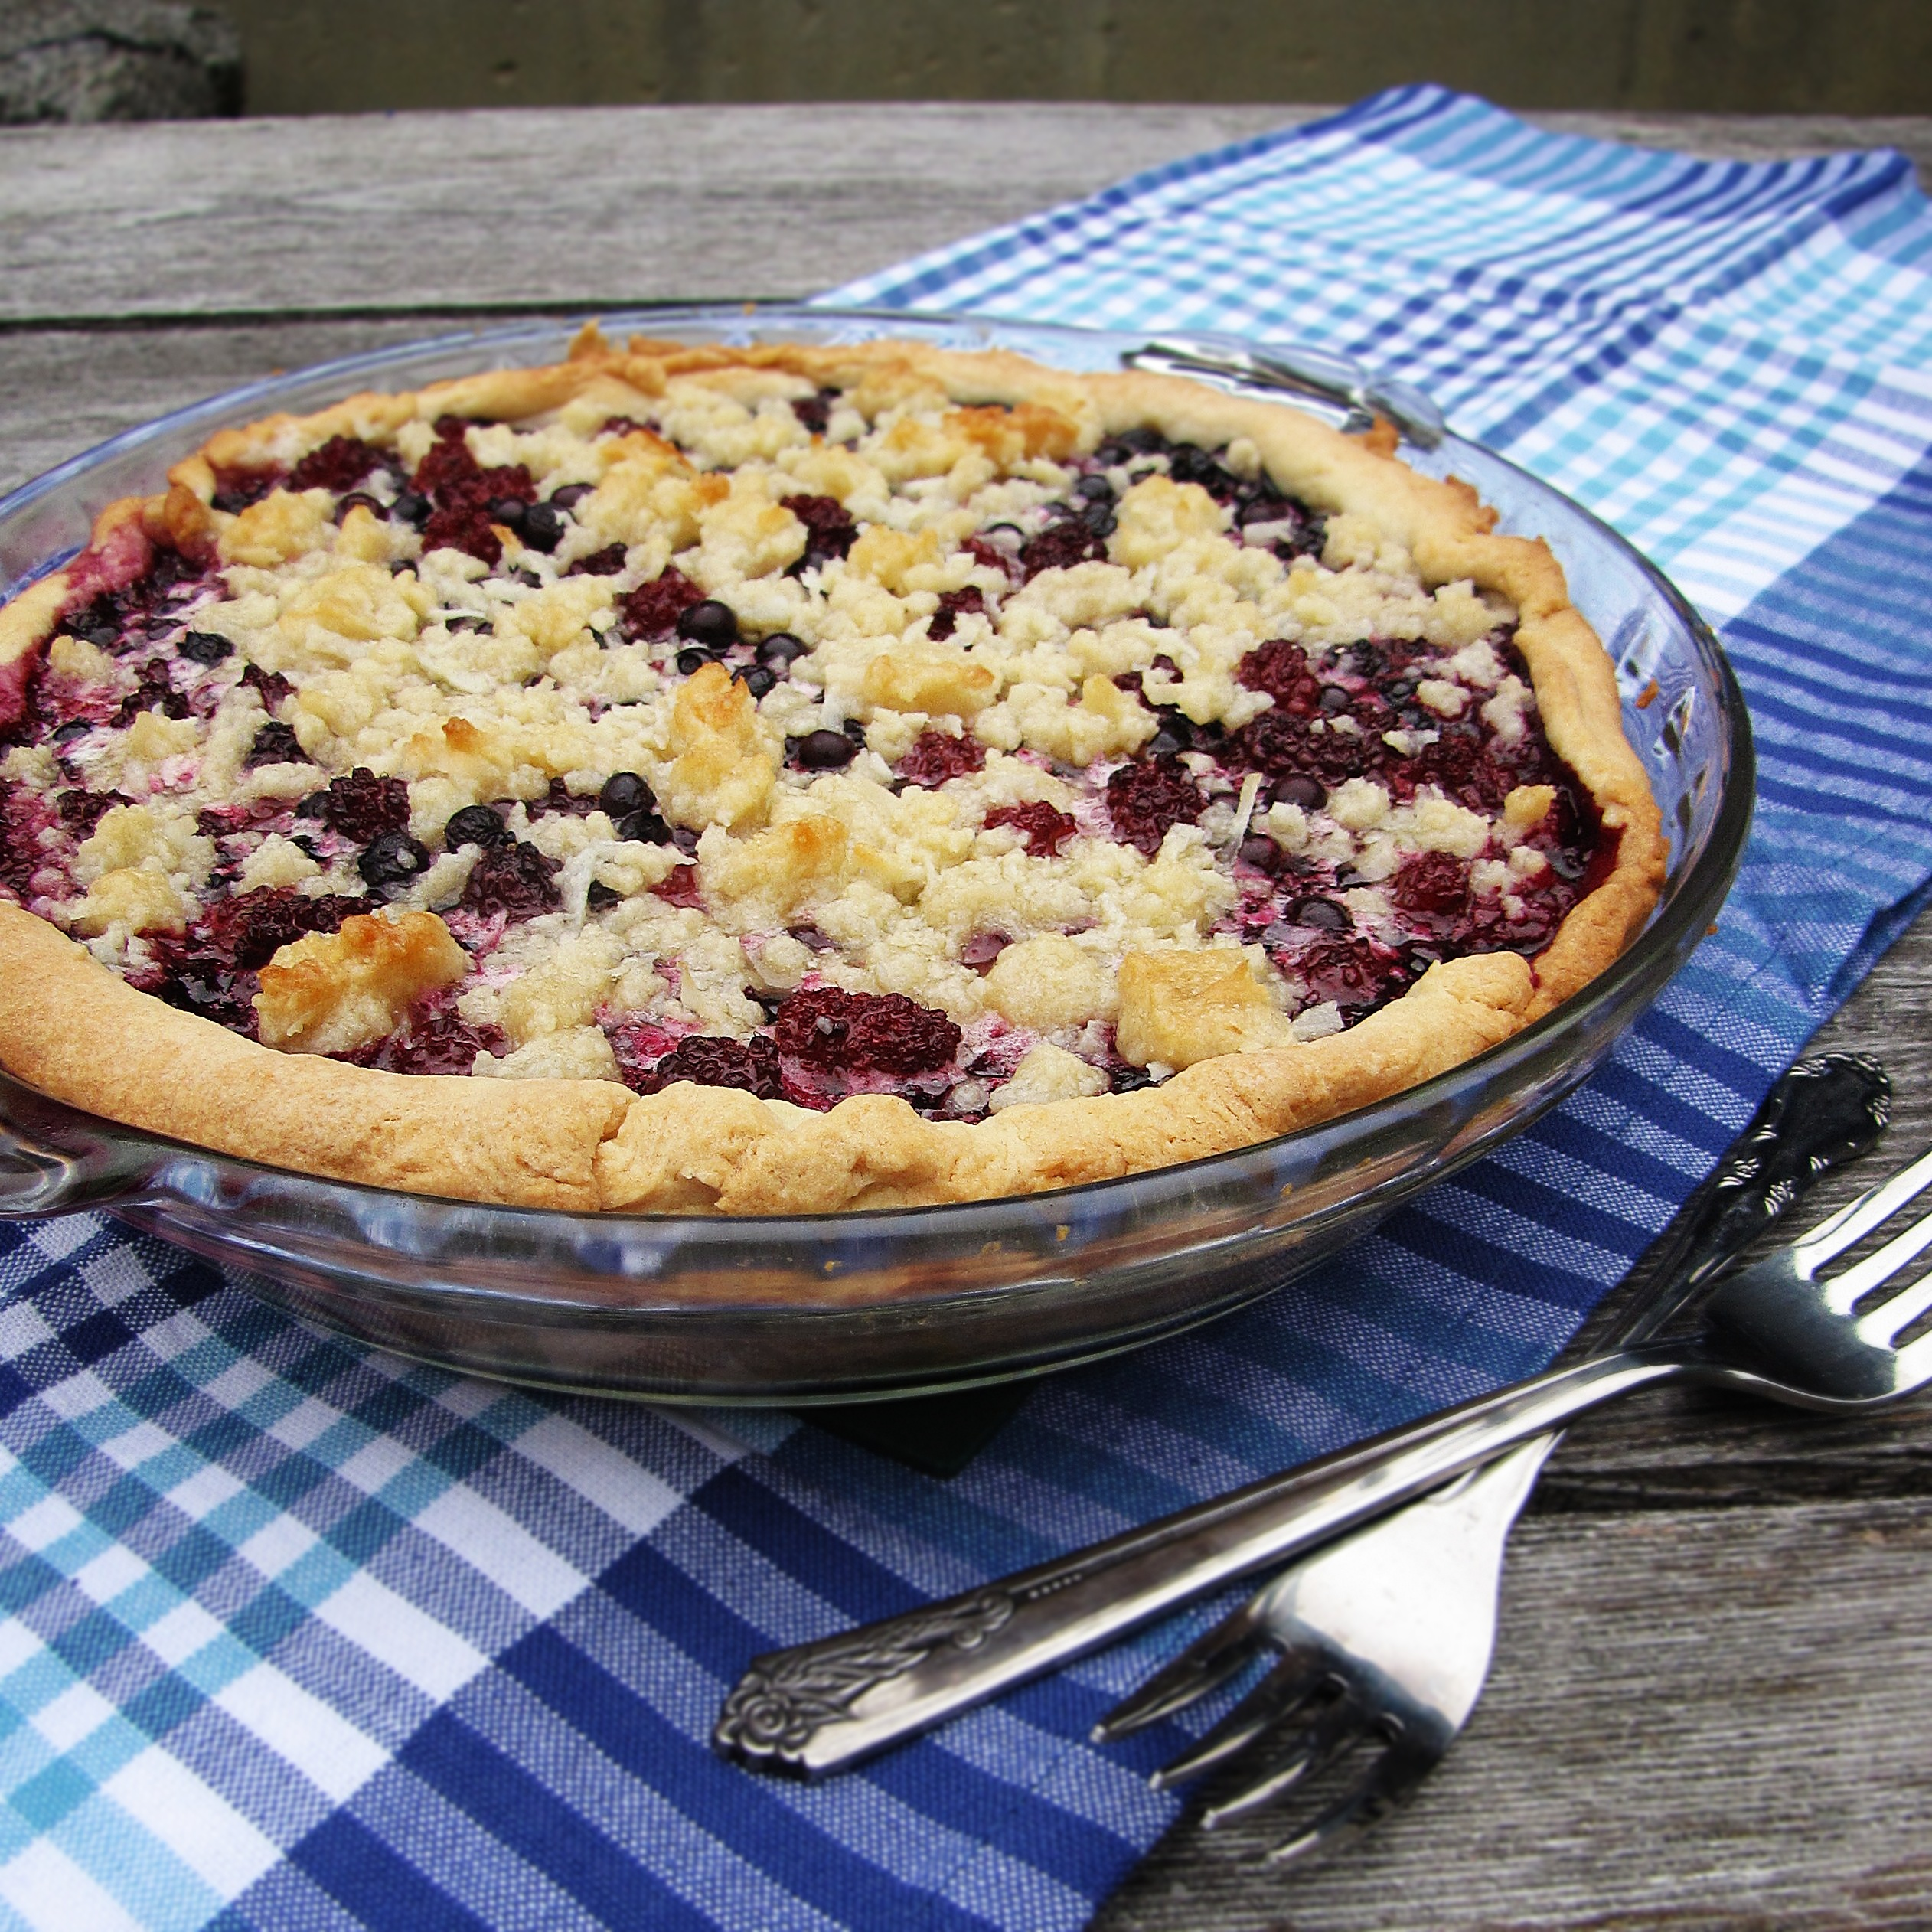 Good ol' Blueberry-and-Coconut Pie